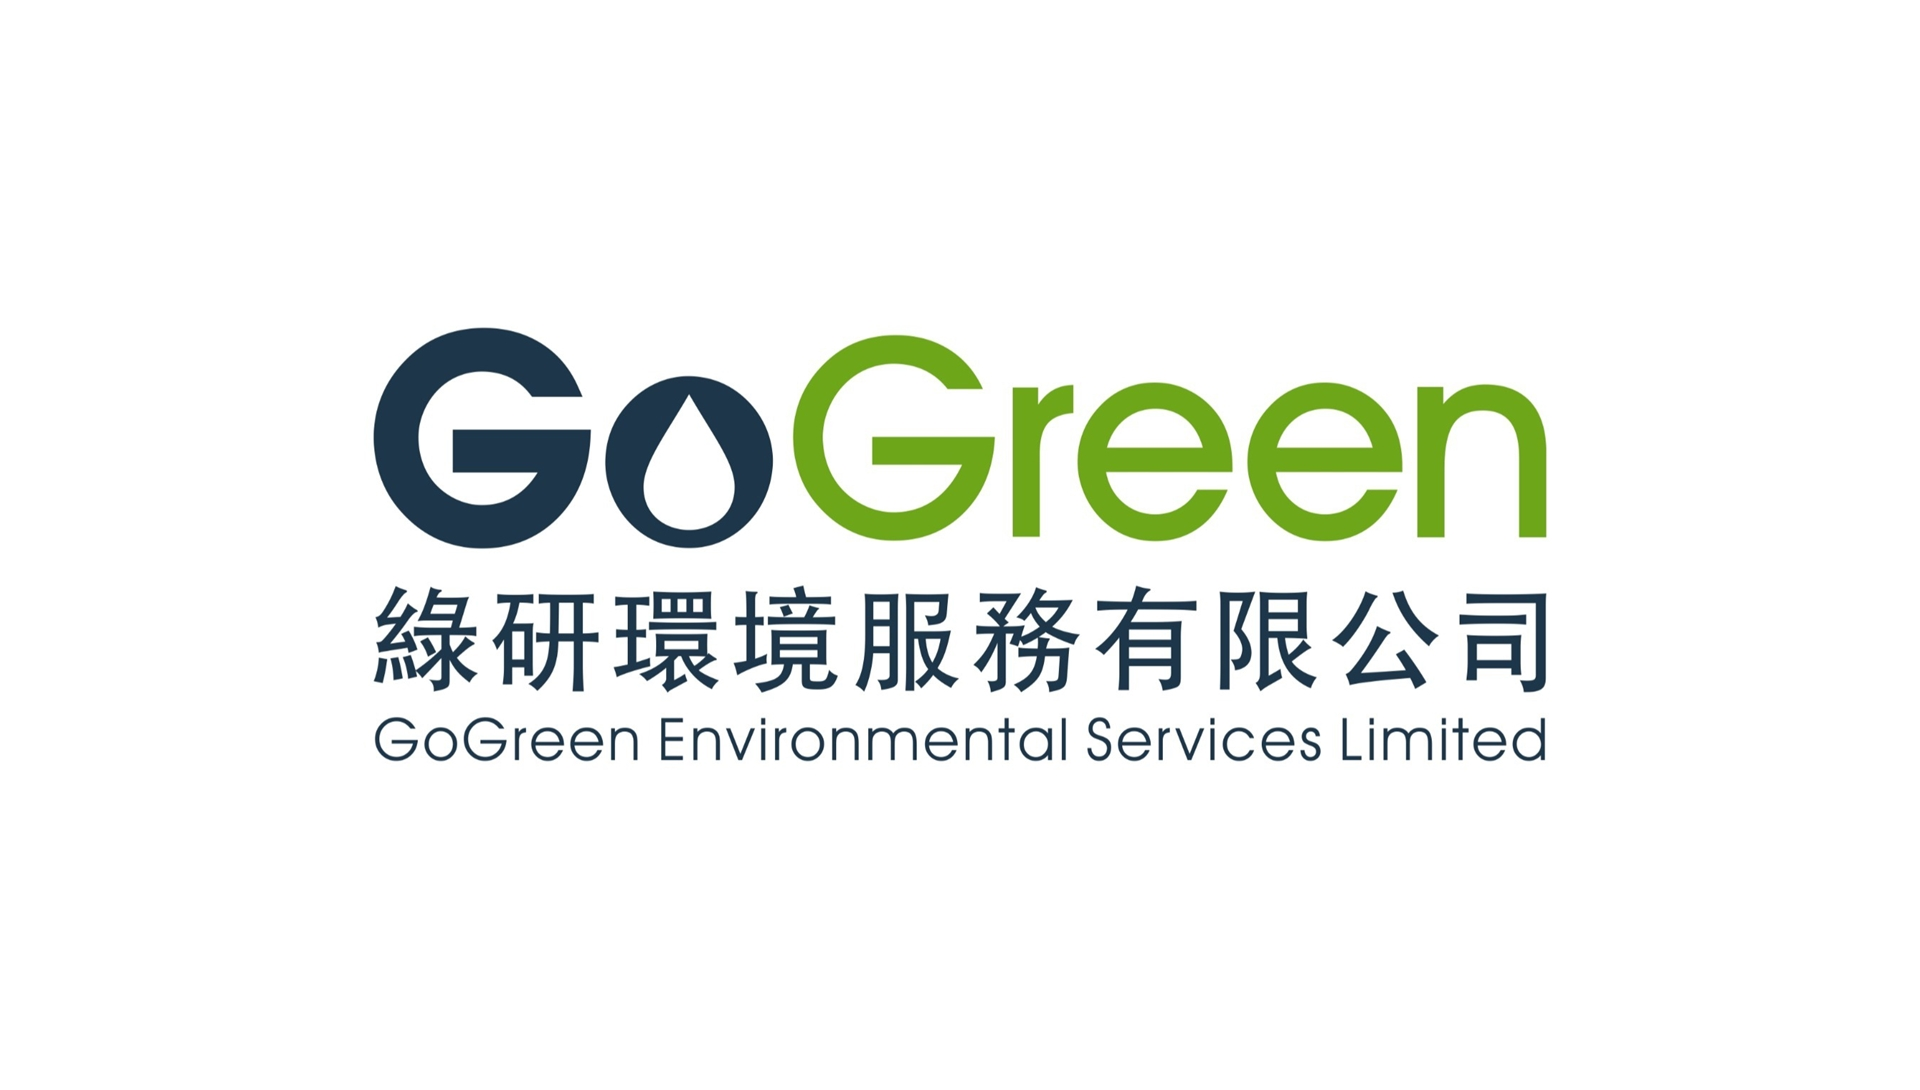 Center Images: GoGreen Environmental Service Limited